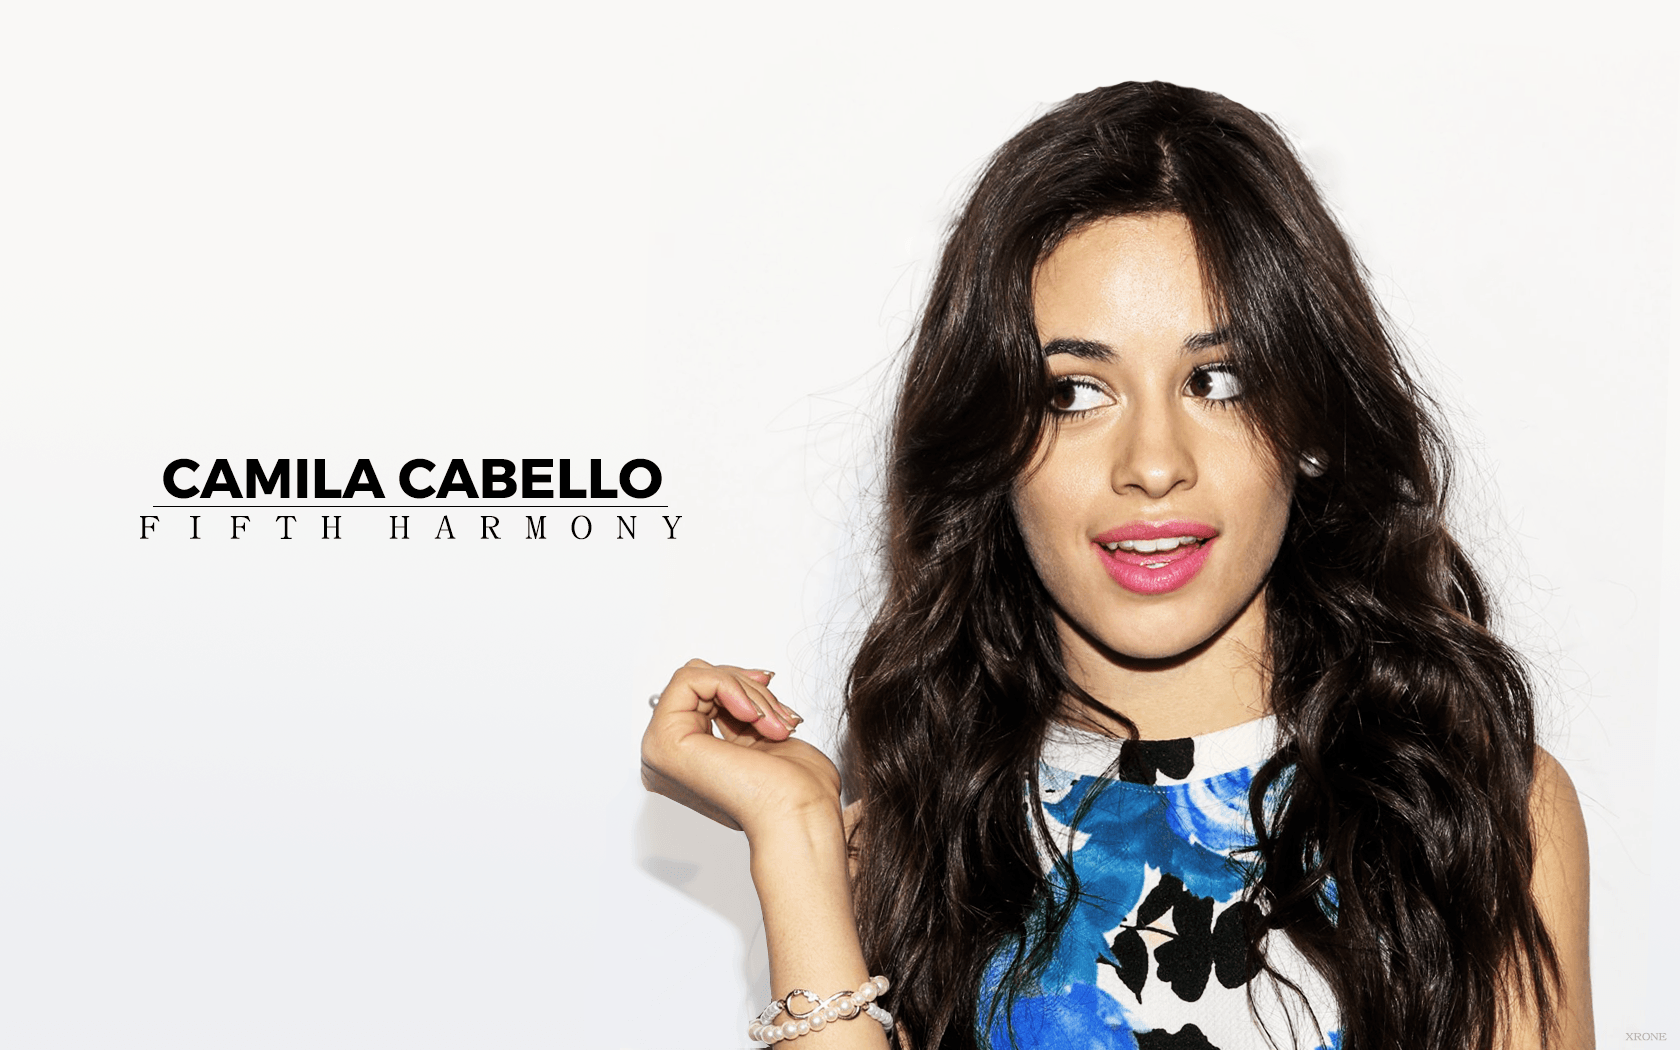 Camila Cabello Wallpapers - Top Free